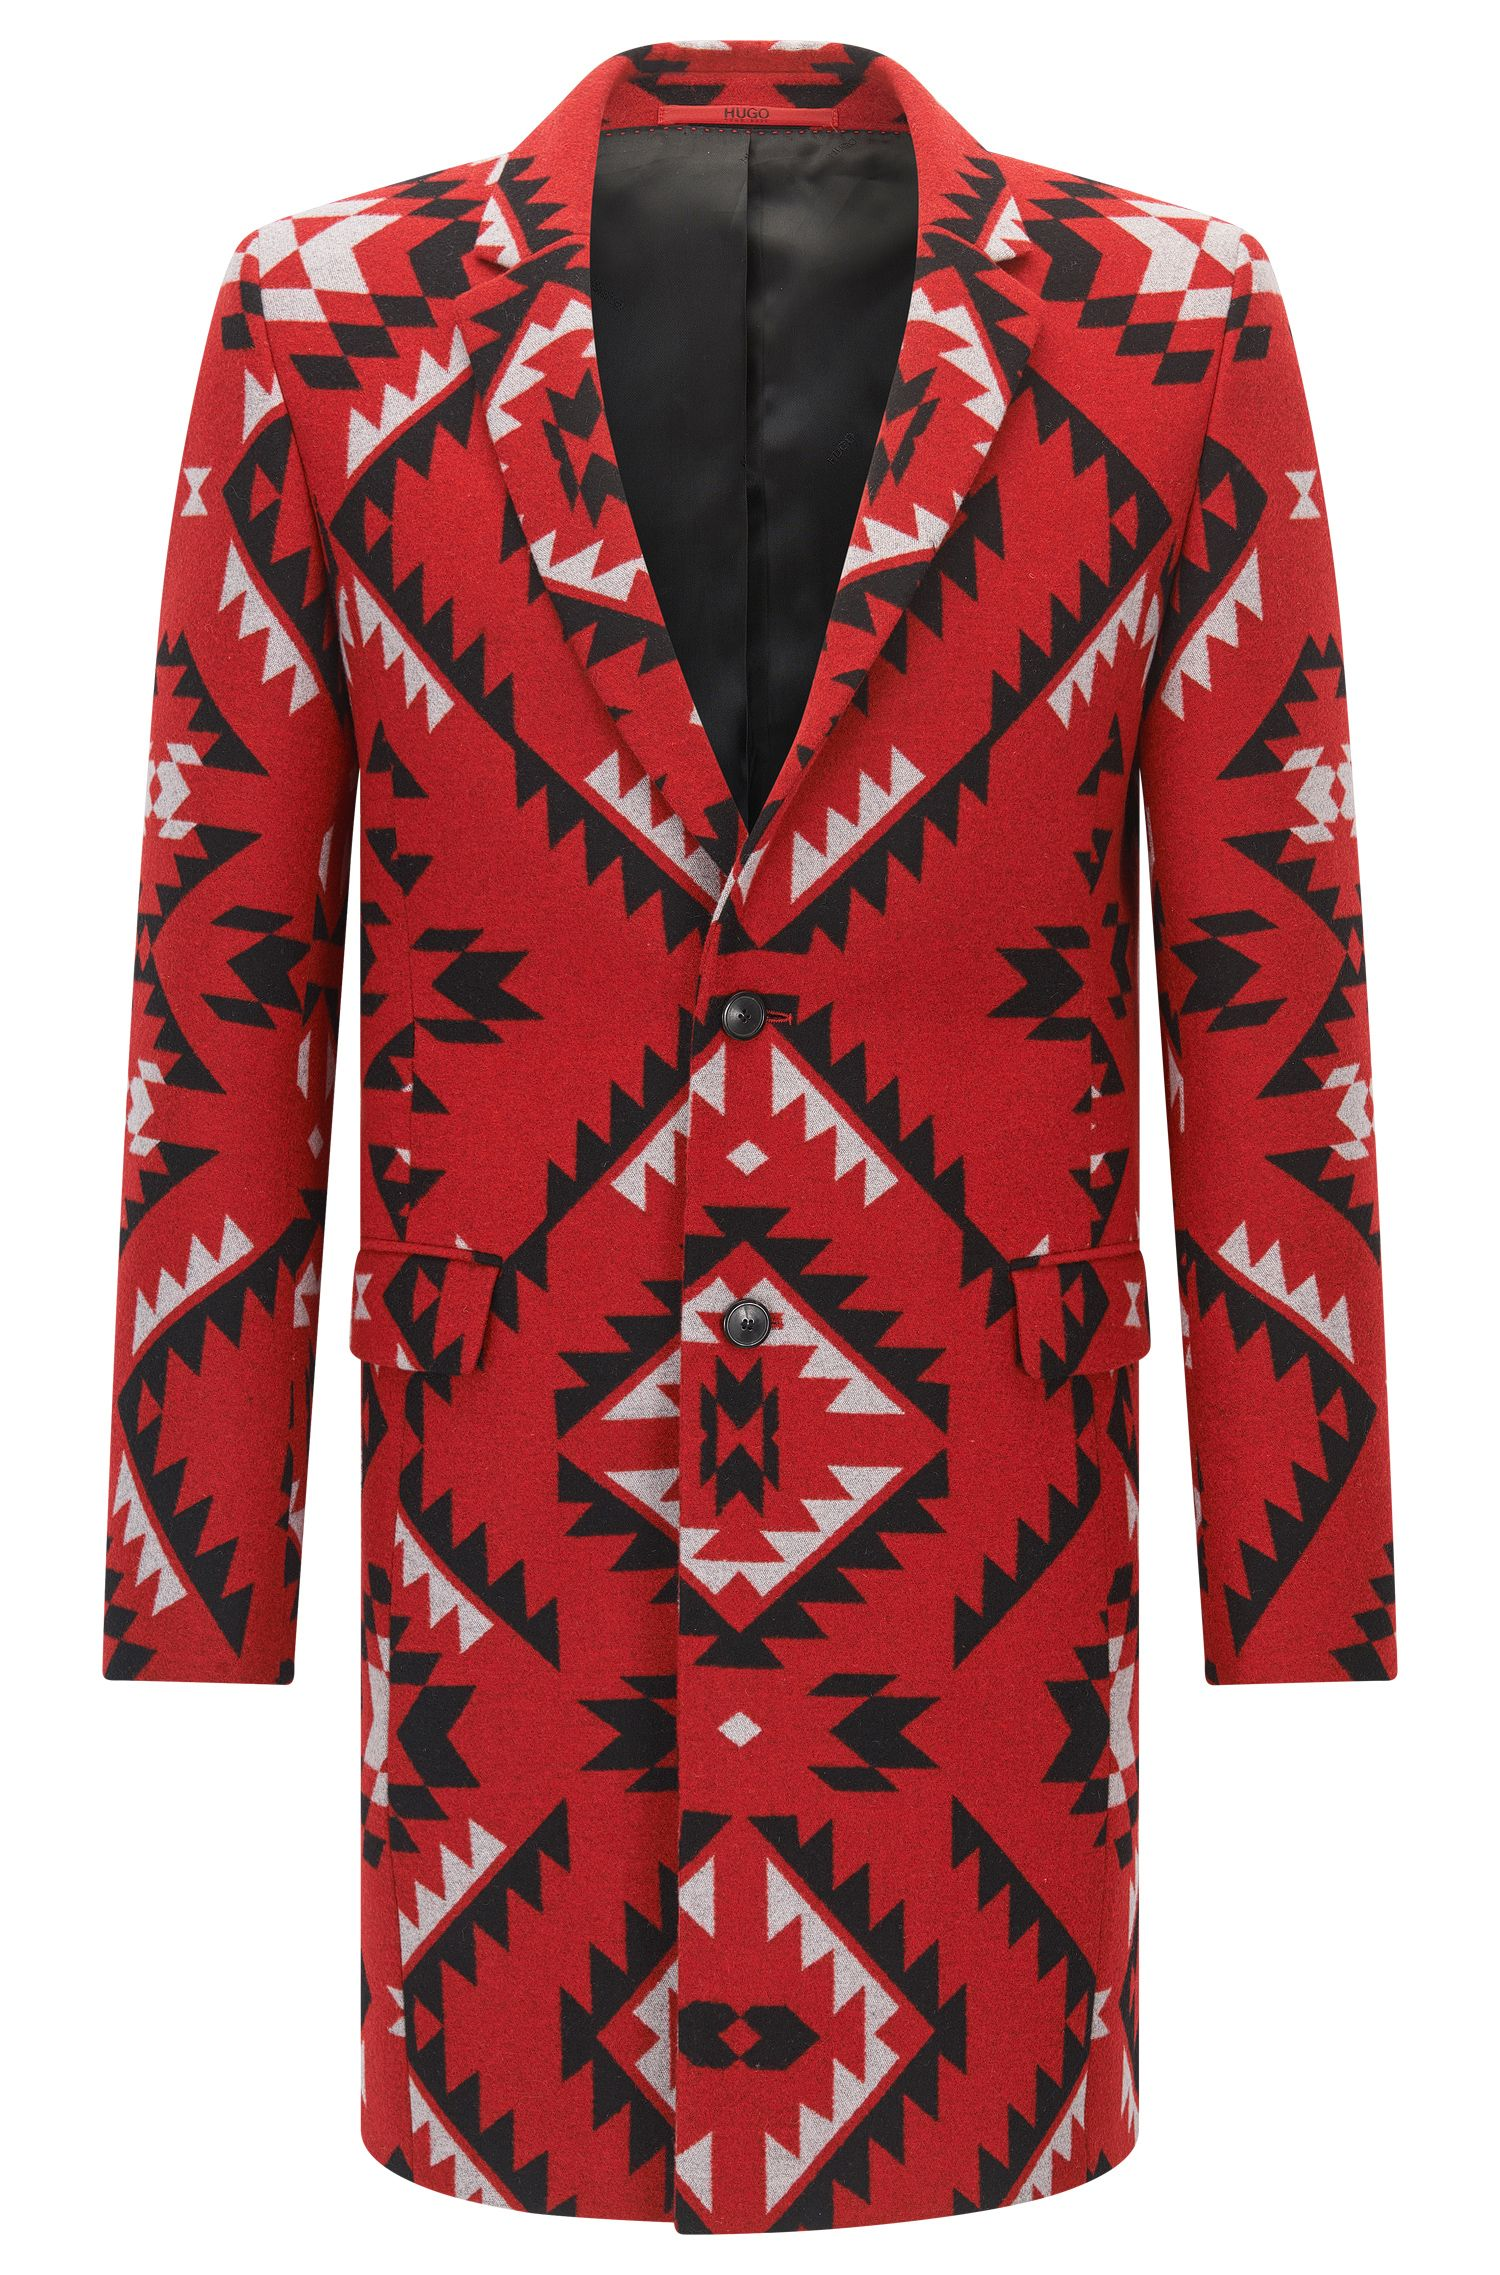 Patterned extra-slim-fit jacket in a wool blend